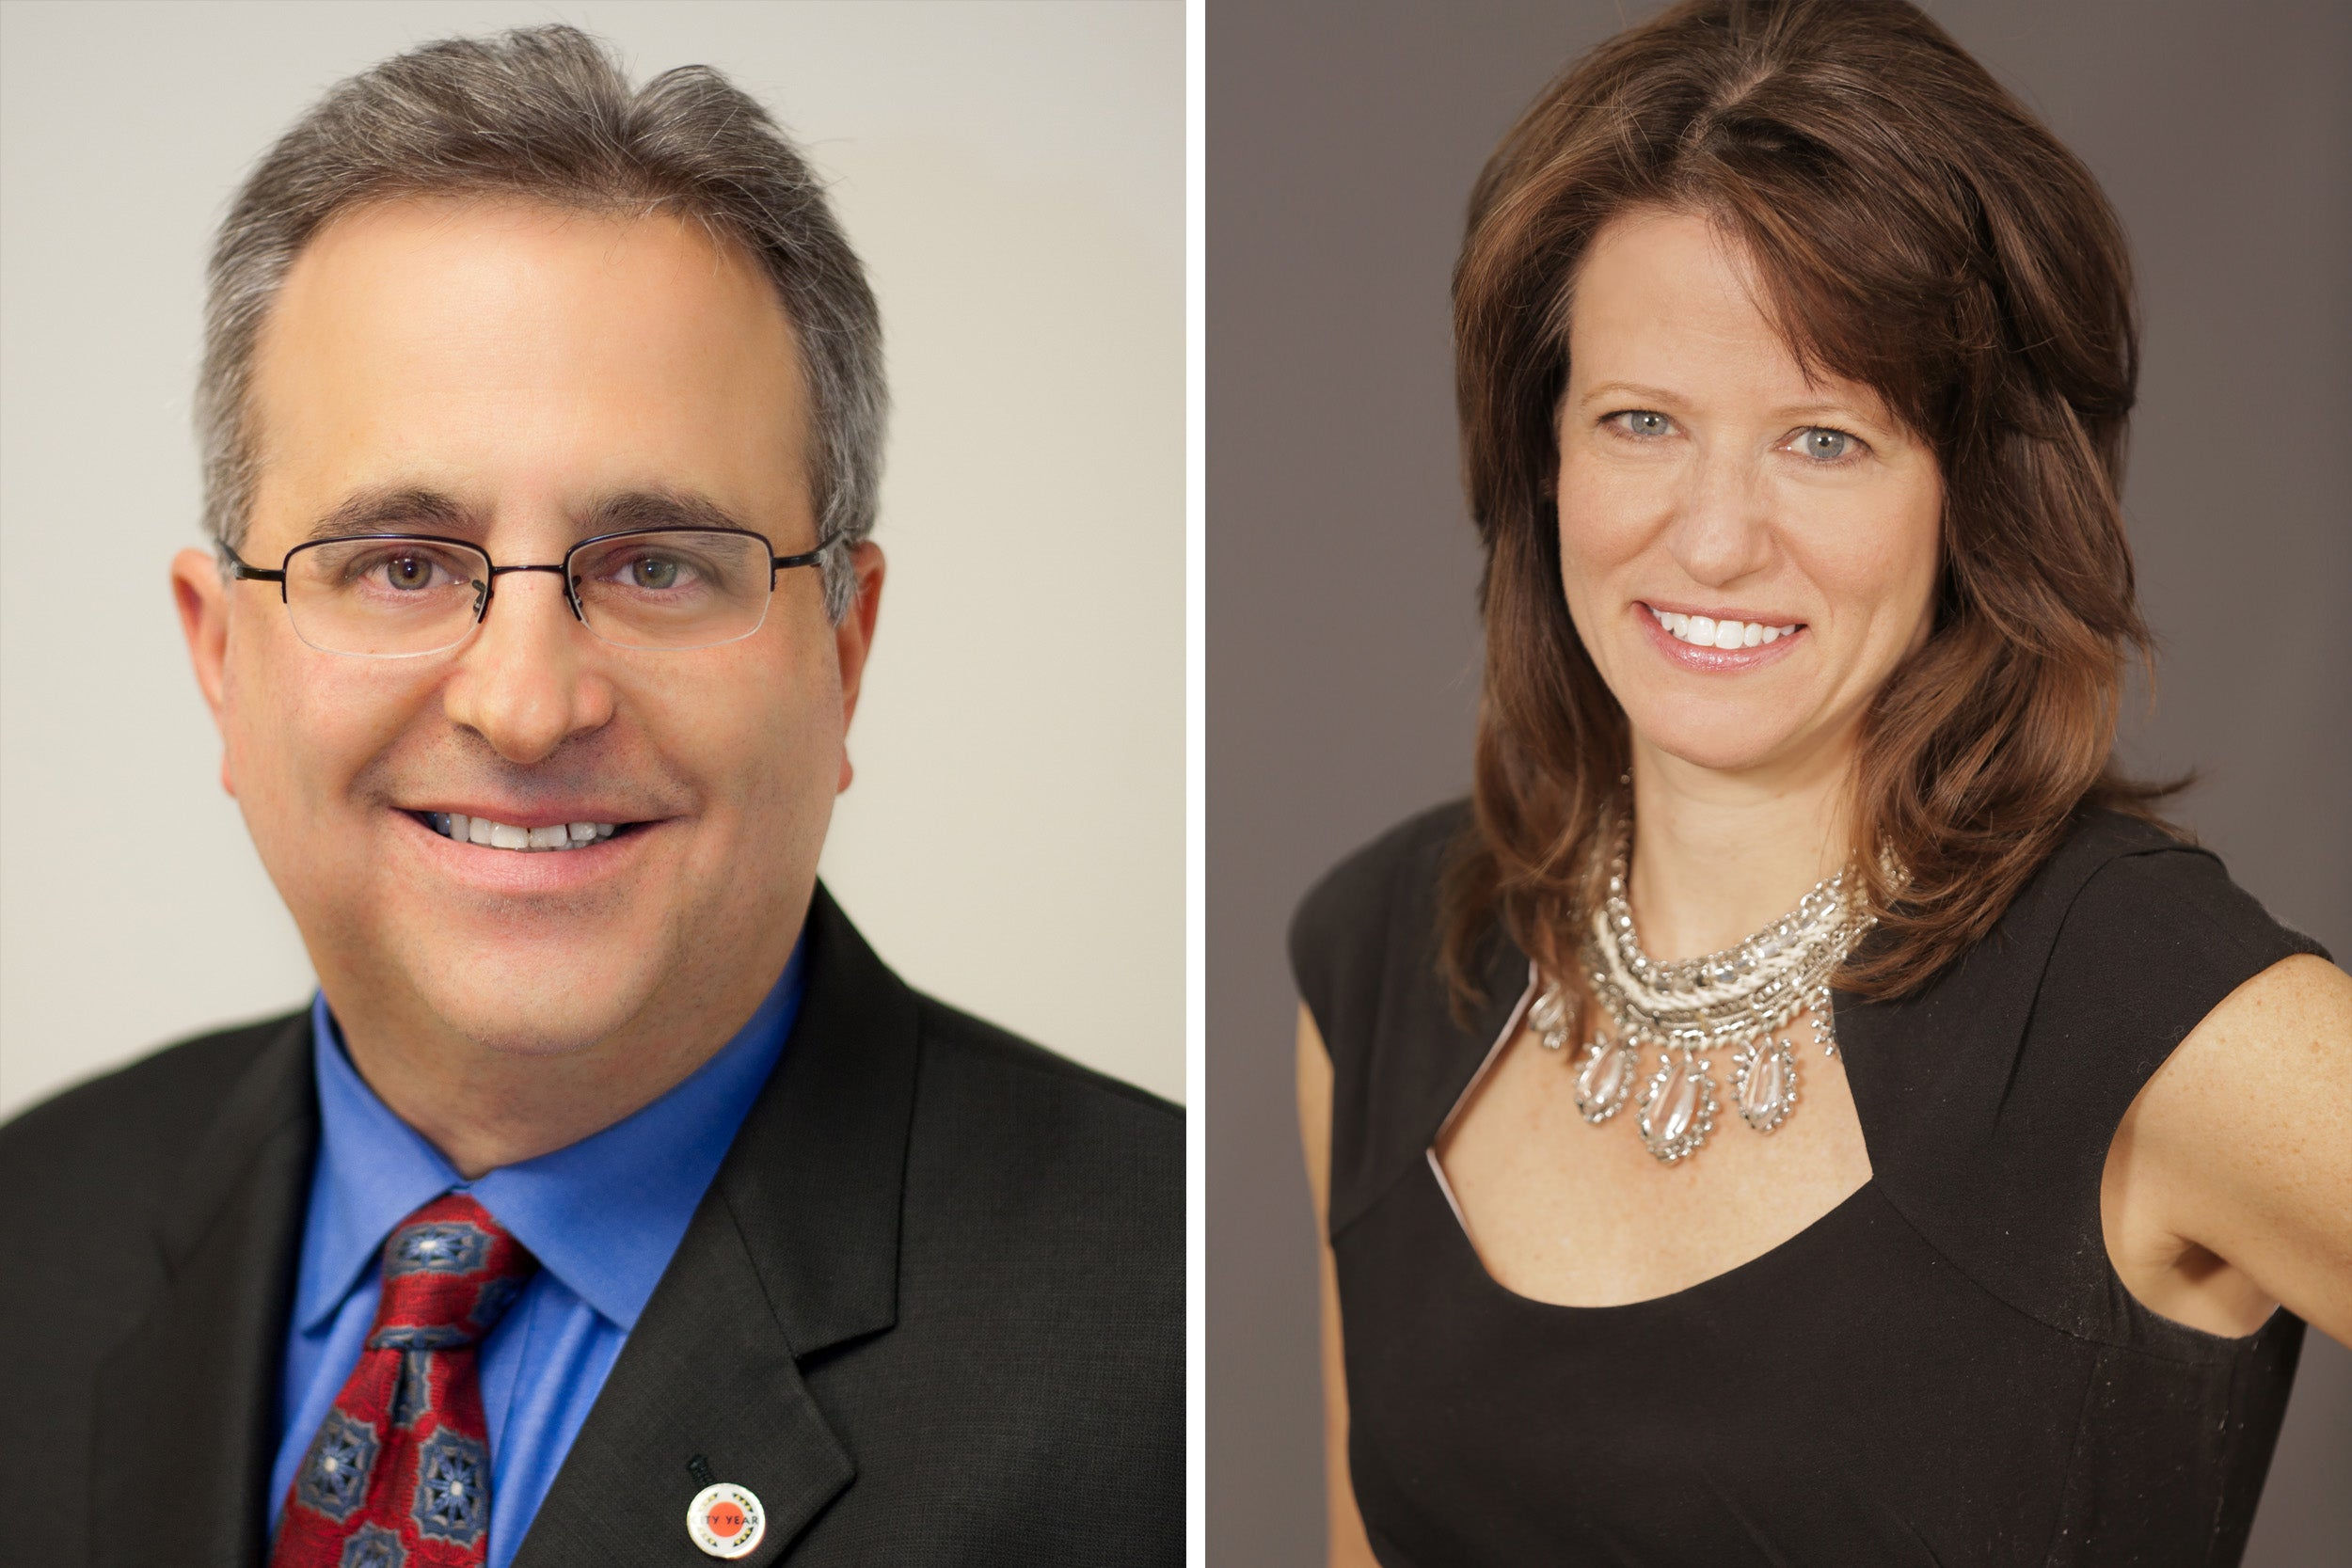 Michael Brown on left and Lesley Rosenthal